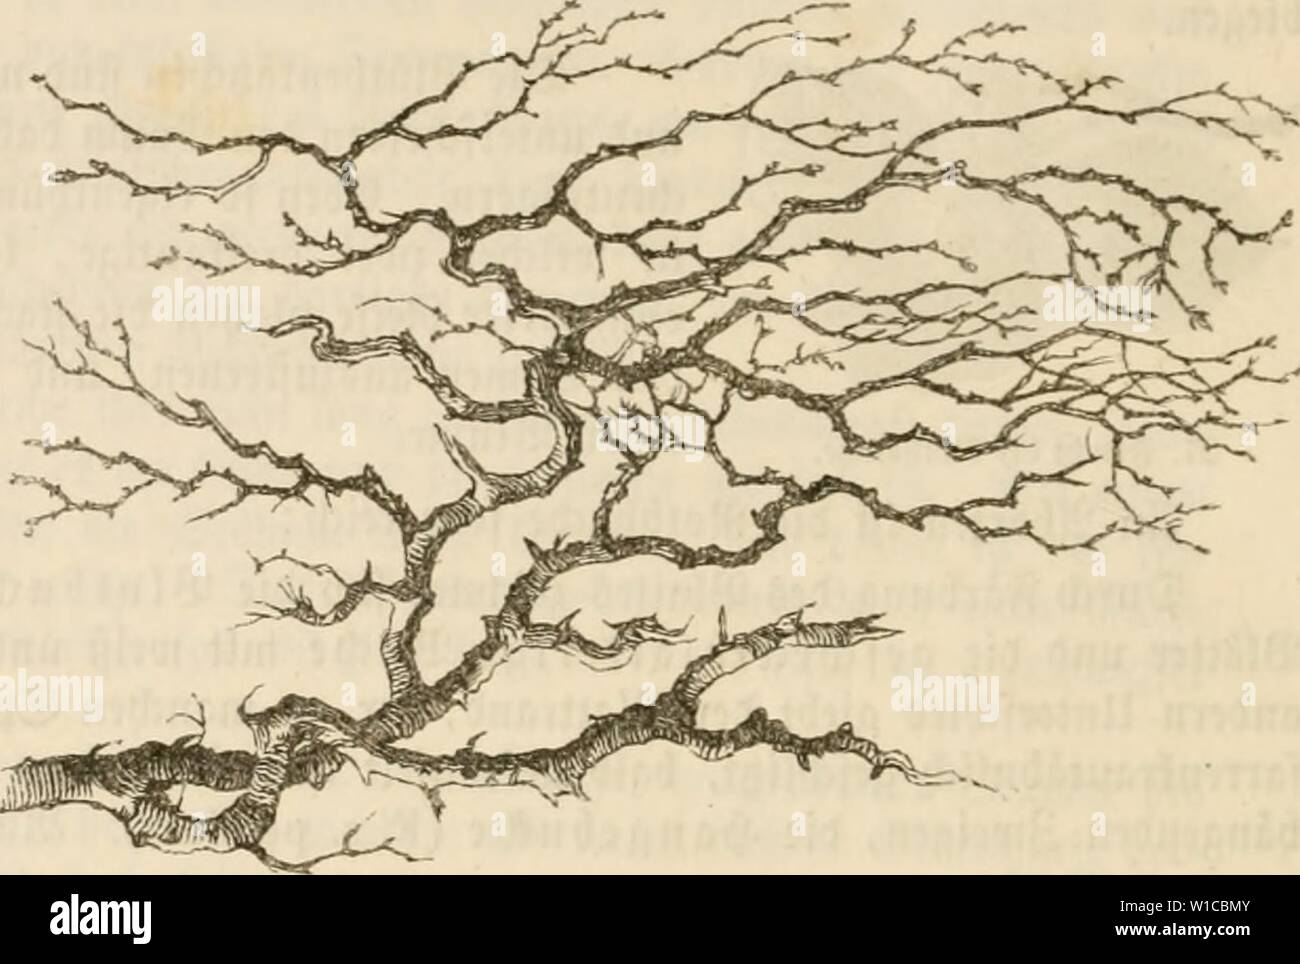 1857 59 Stock Photos & 1857 59 Stock Images - Alamy Phyiso Nt Map Of India Images on